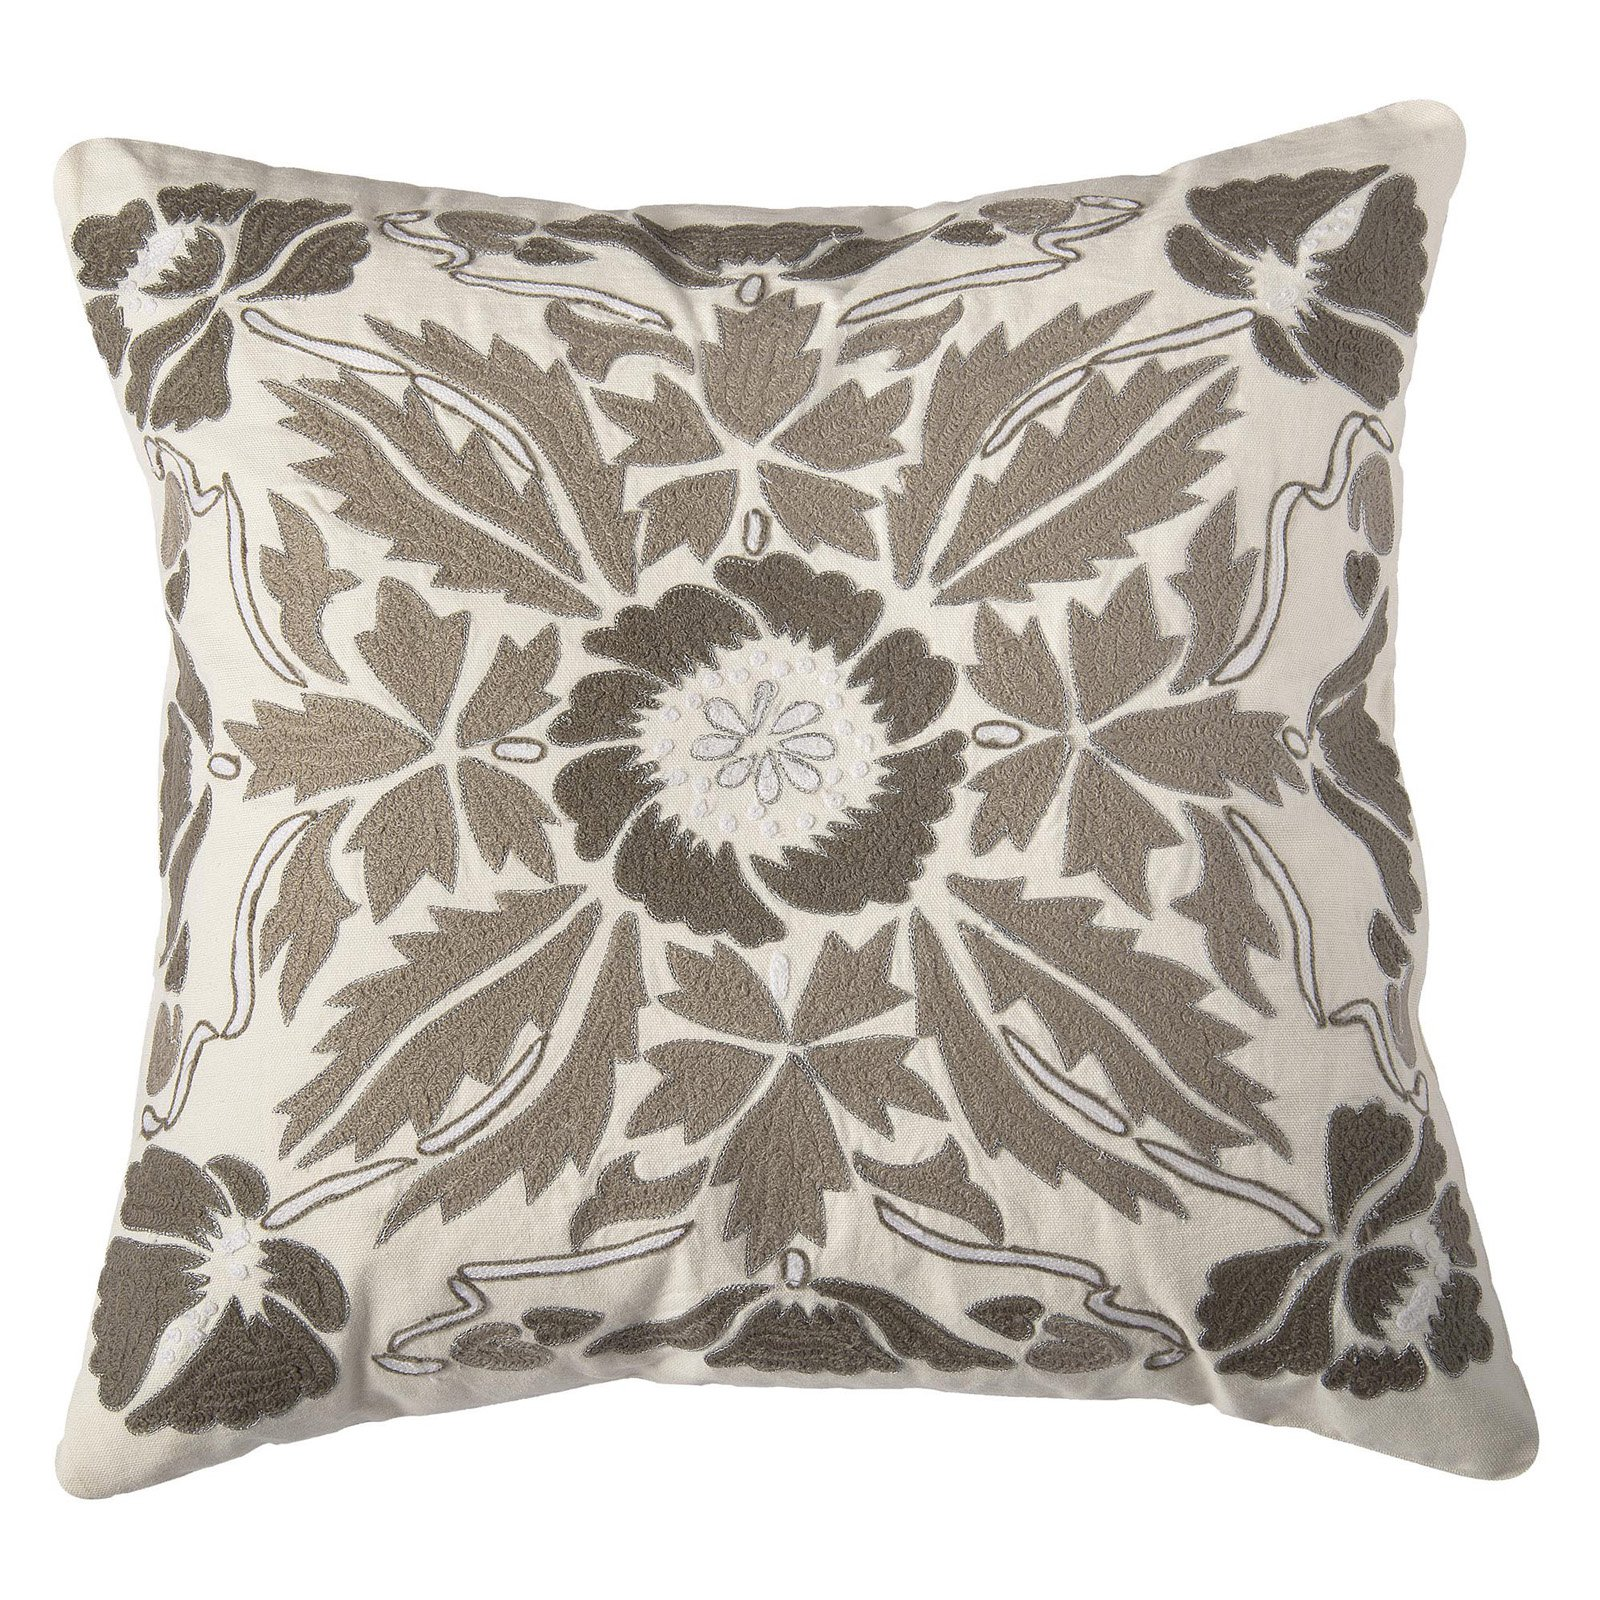 Rizzy Home Hand Applique Embroidery Decorative Leaf Design Throw Pillow